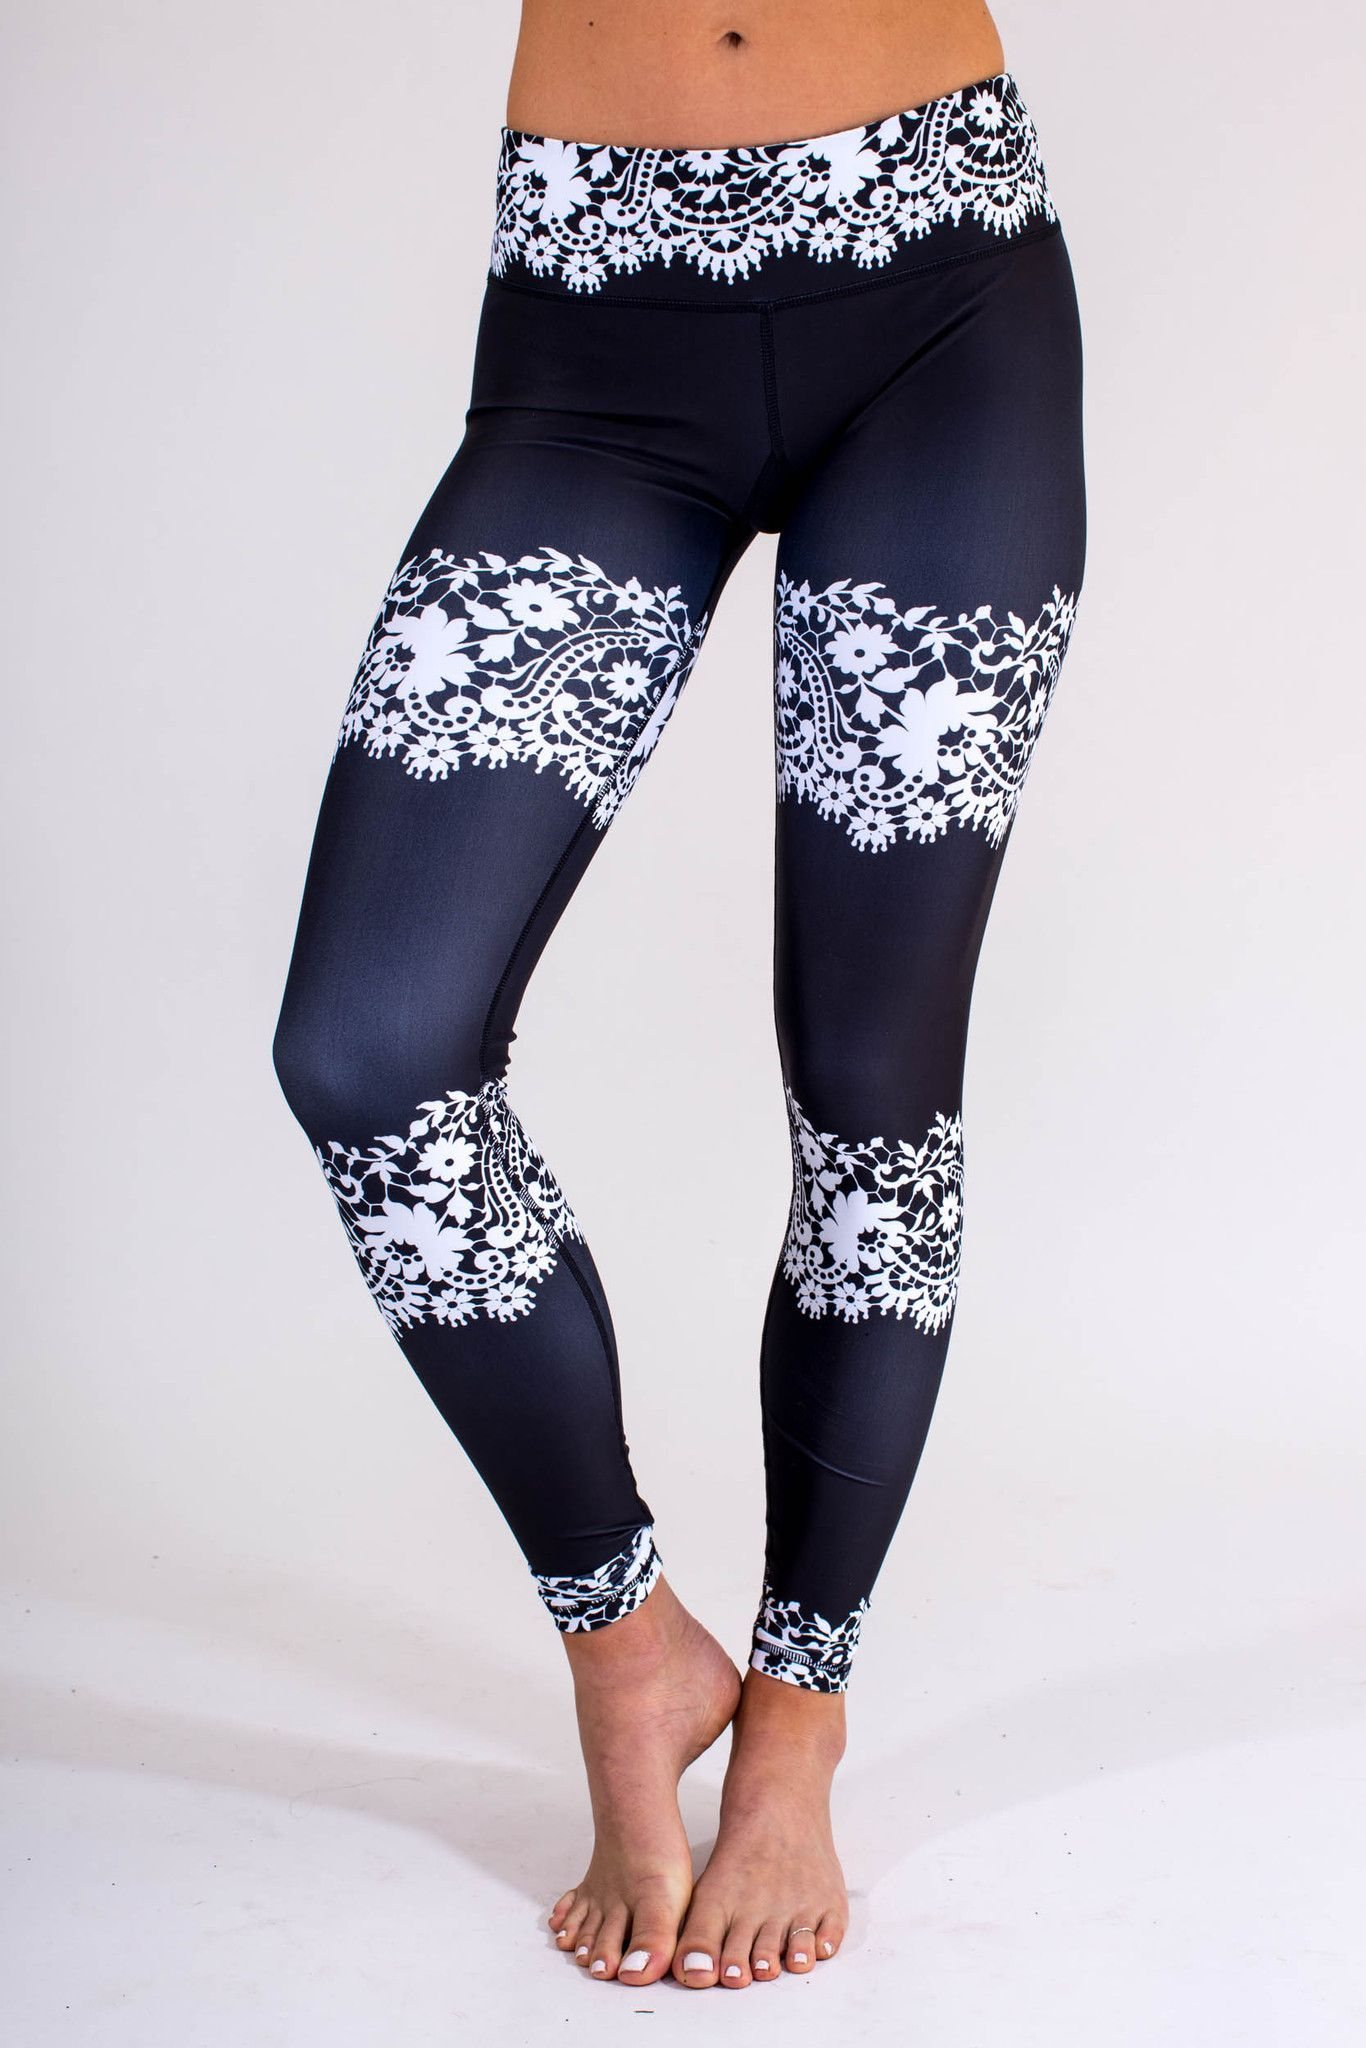 Black Lace Leggings | Black laces, Shopping and Clothes